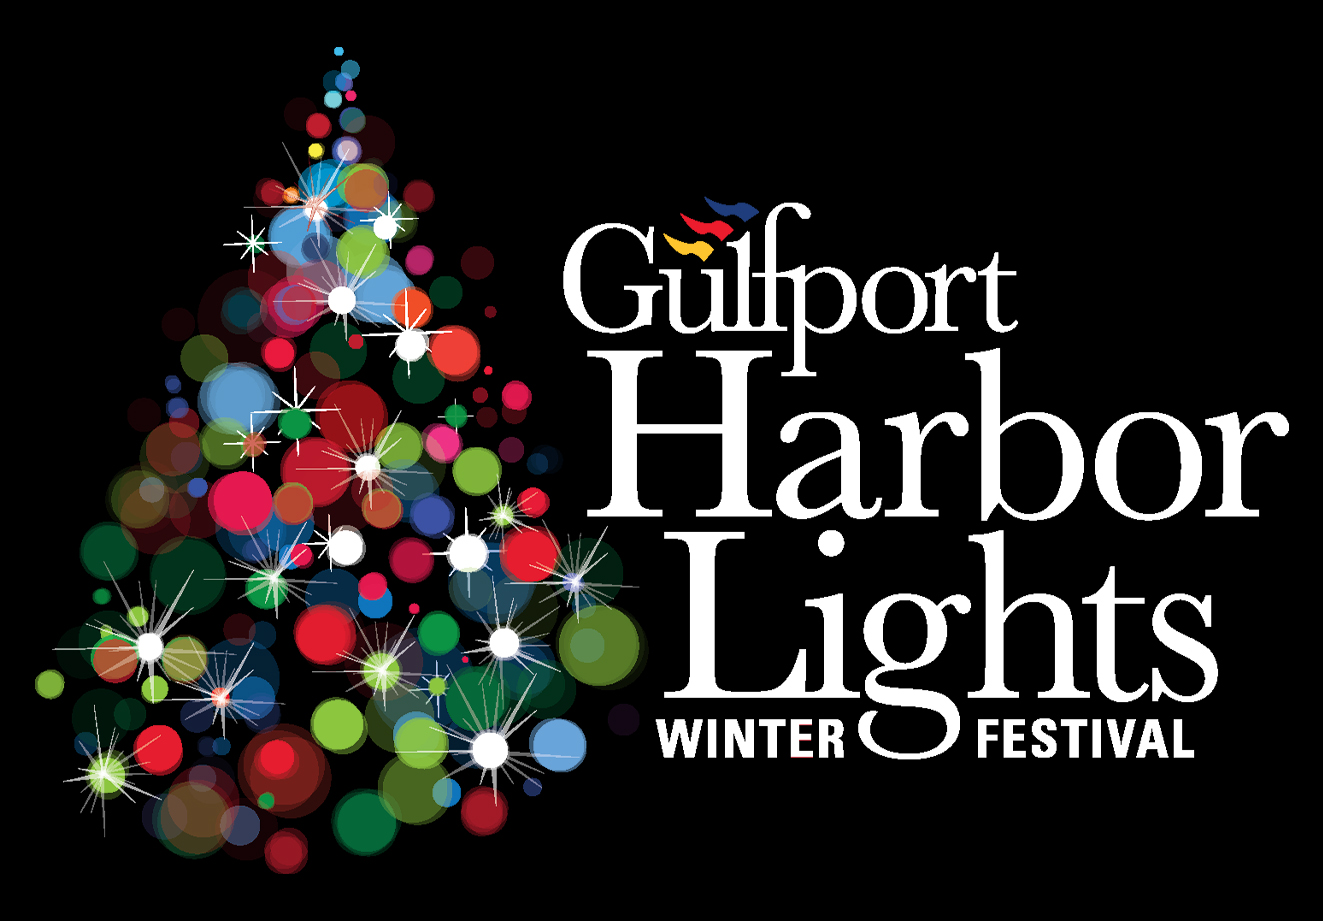 gulfport harbor lights festival